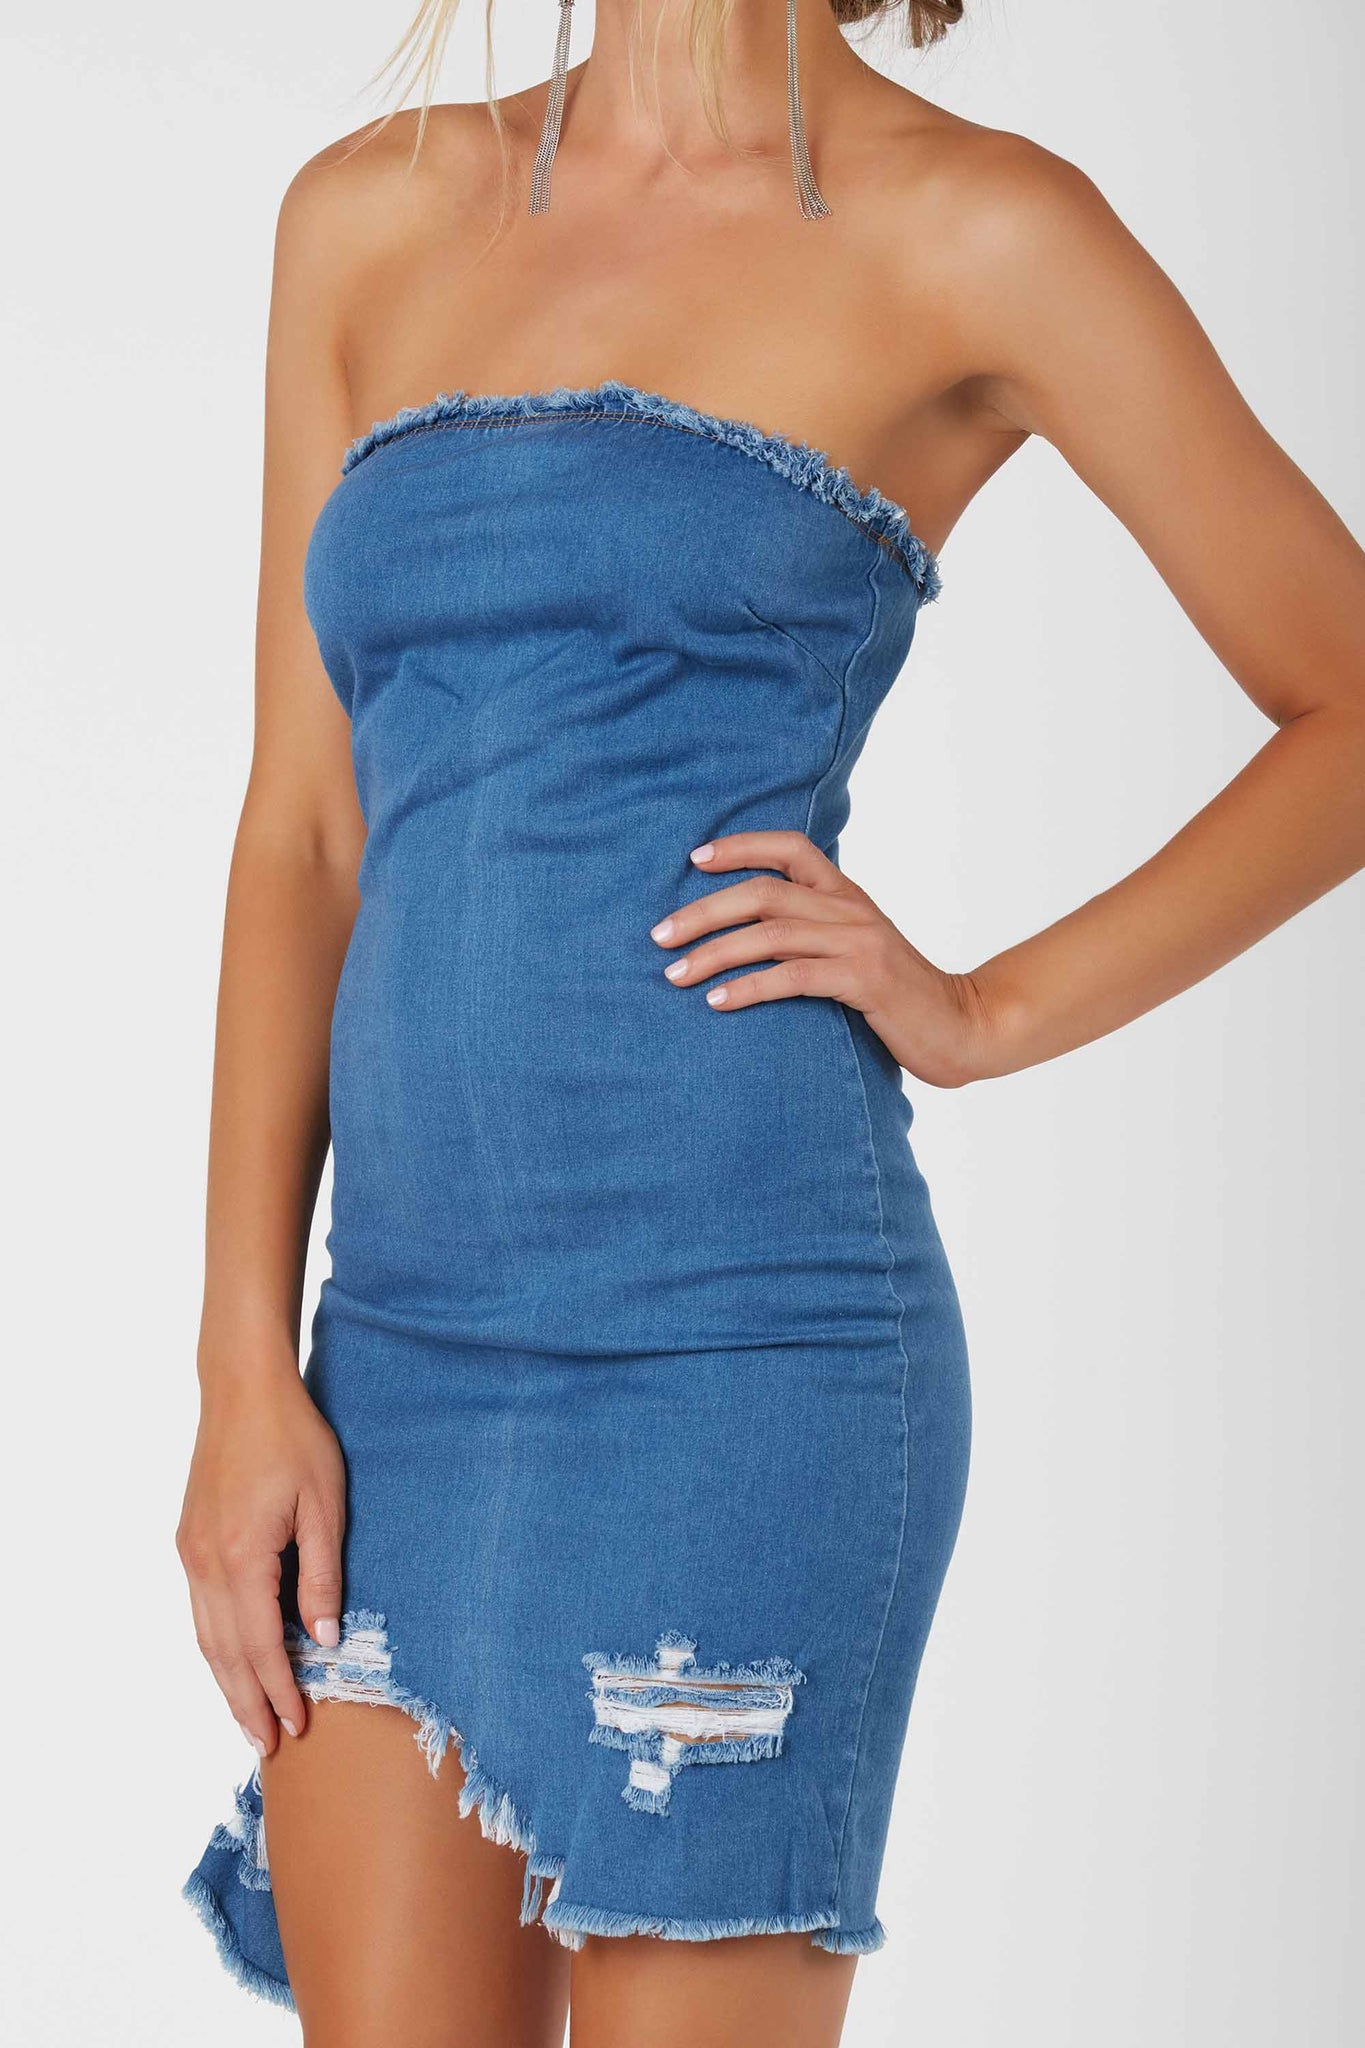 Trendy strapless tube dress with frayed raw edge finish all around. Distressed detailing and uneven hem with back zip closure.